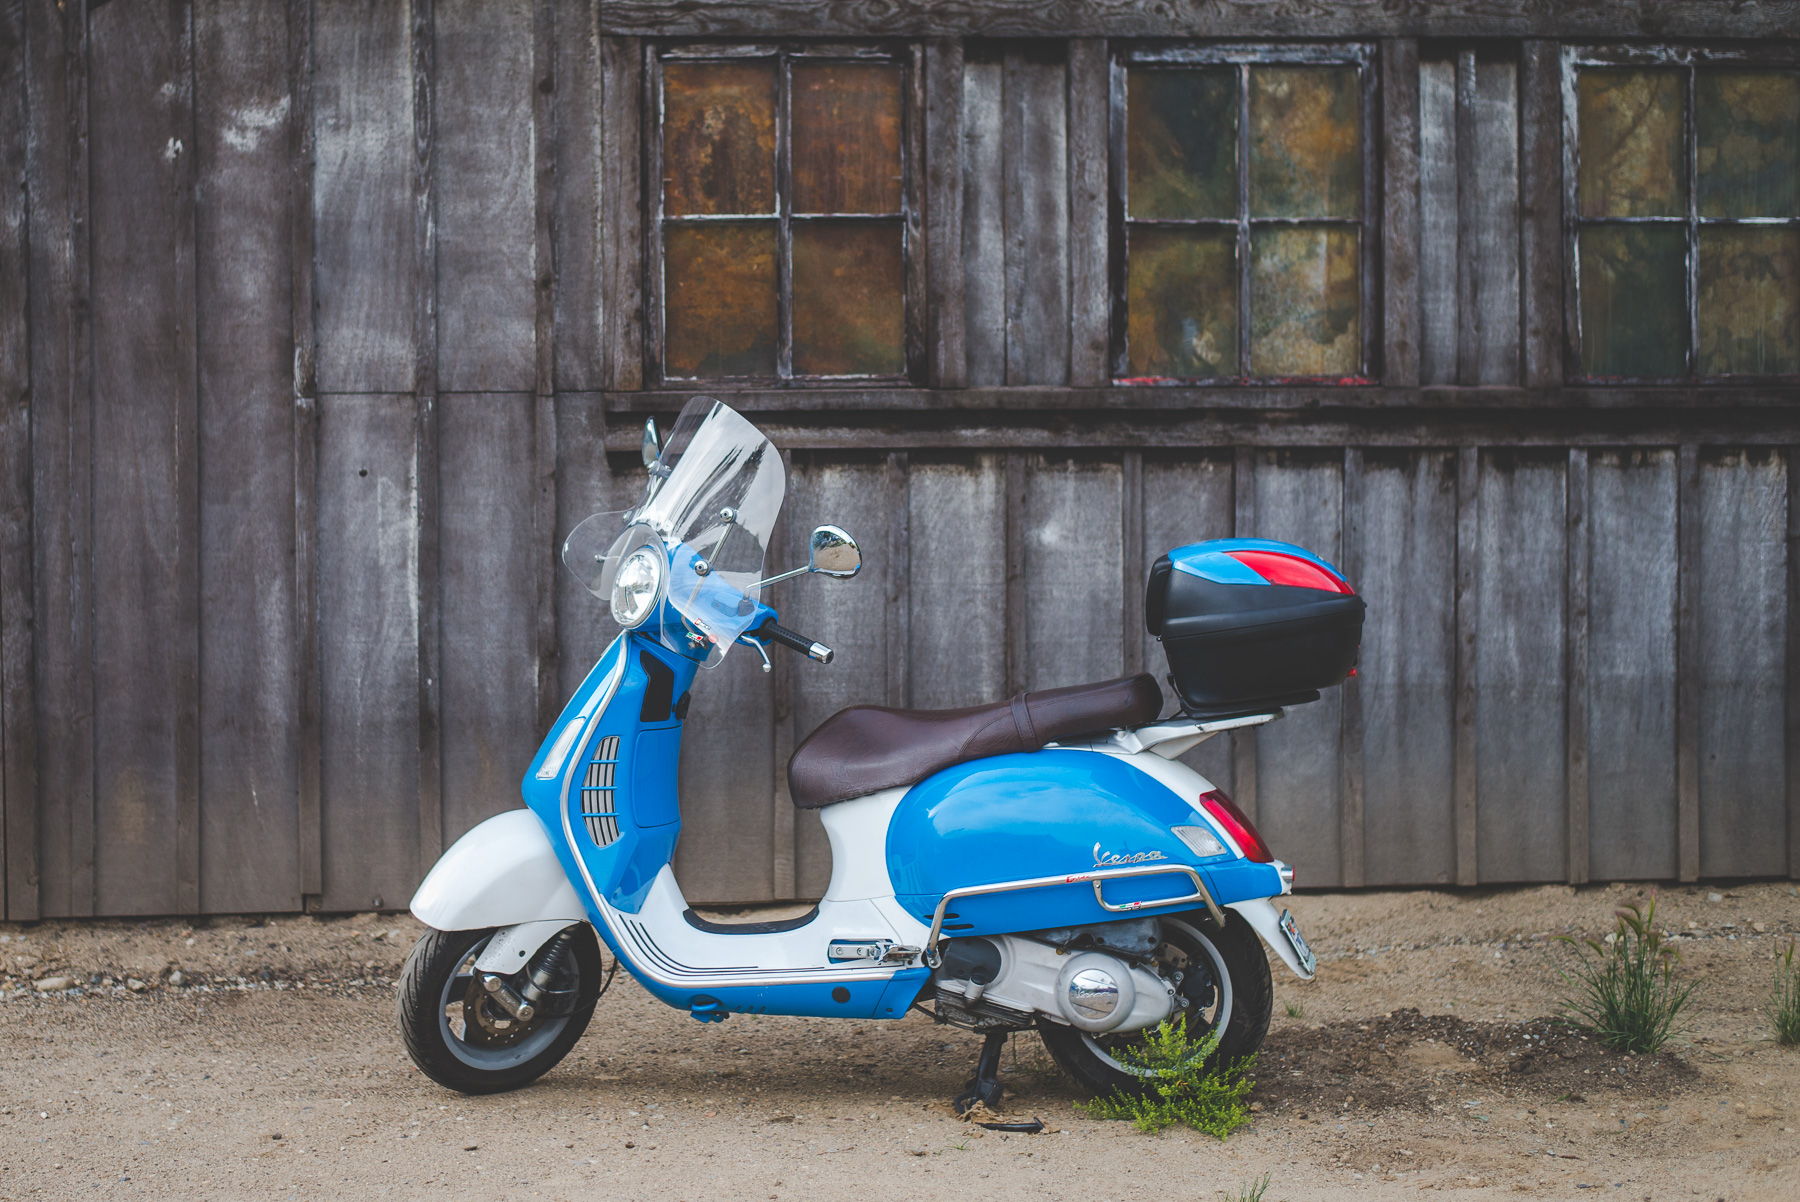 scooter near a rustic building in the Colorado mountains